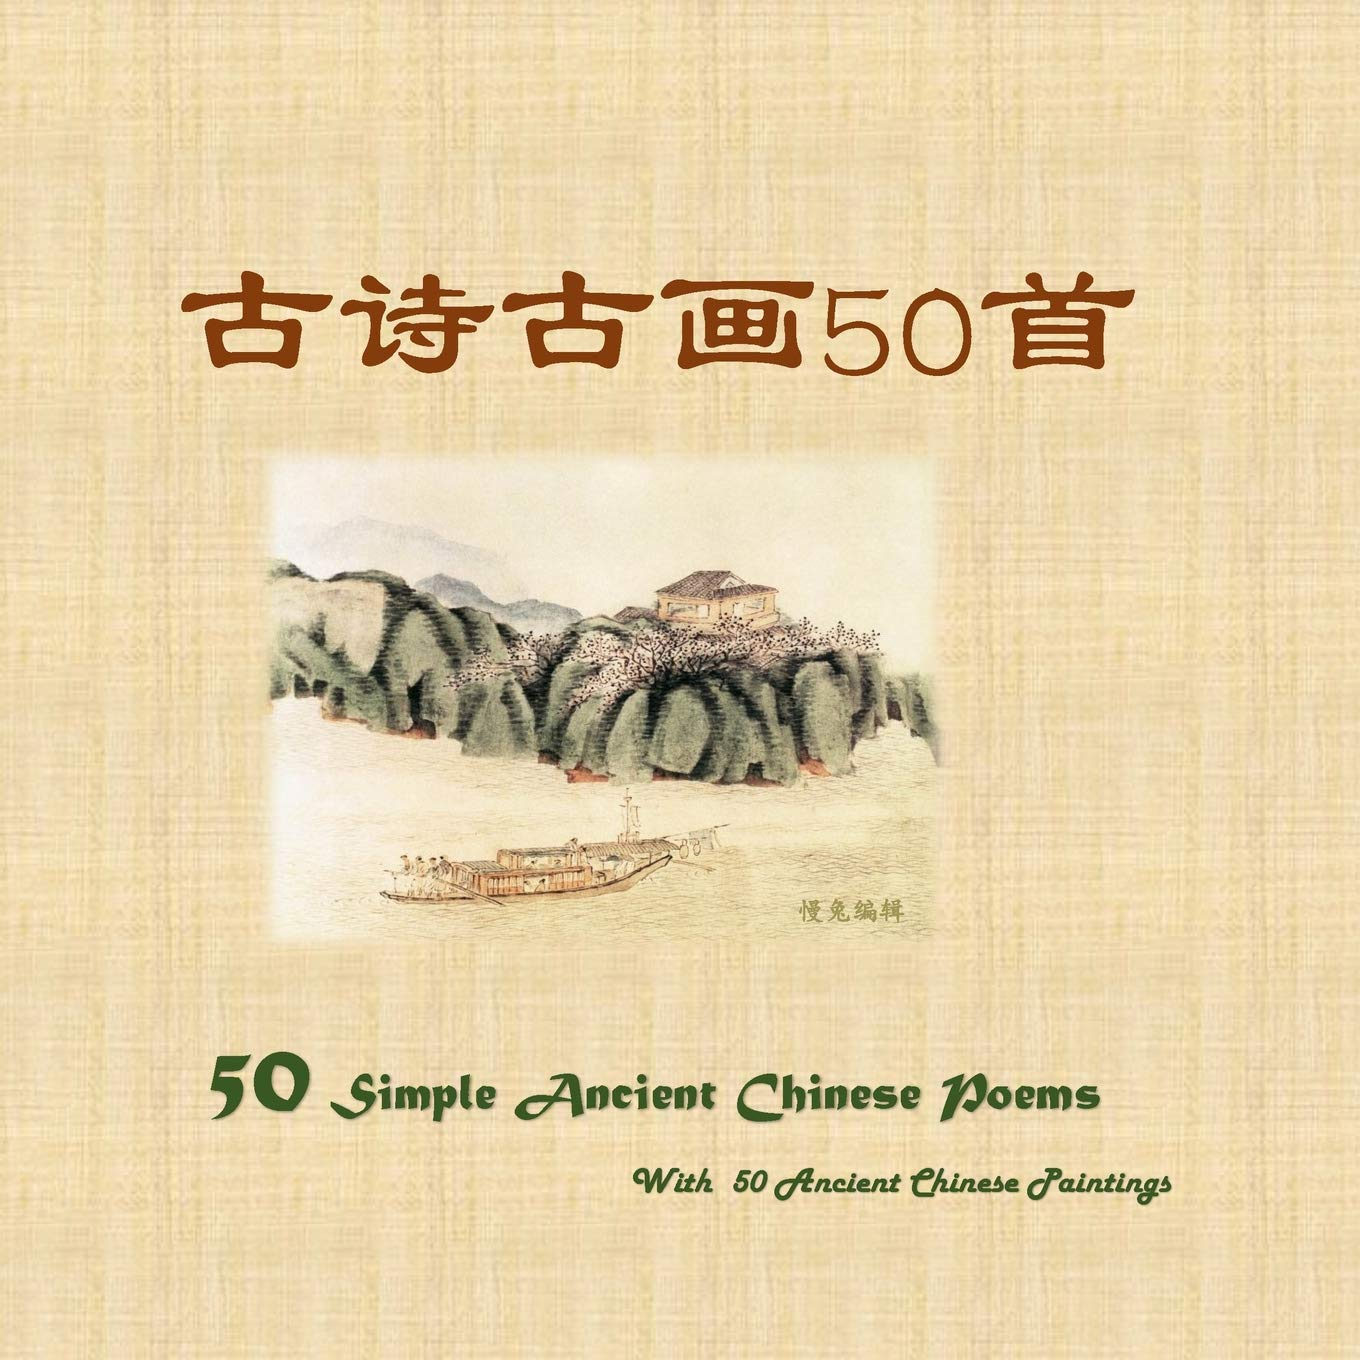 Amazon.com: 50 Simple Ancient Chinese Poems with 50 Ancient ...